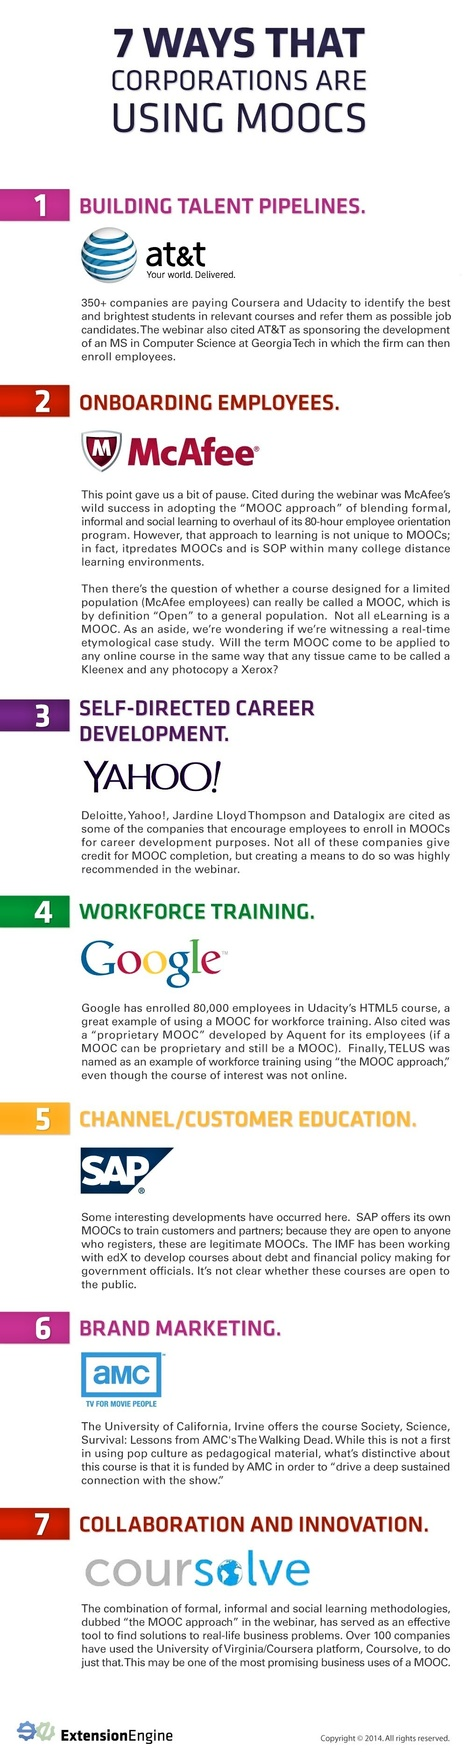 How Corporations Use MOOCs Infographic | Social Media 4 Education | Scoop.it